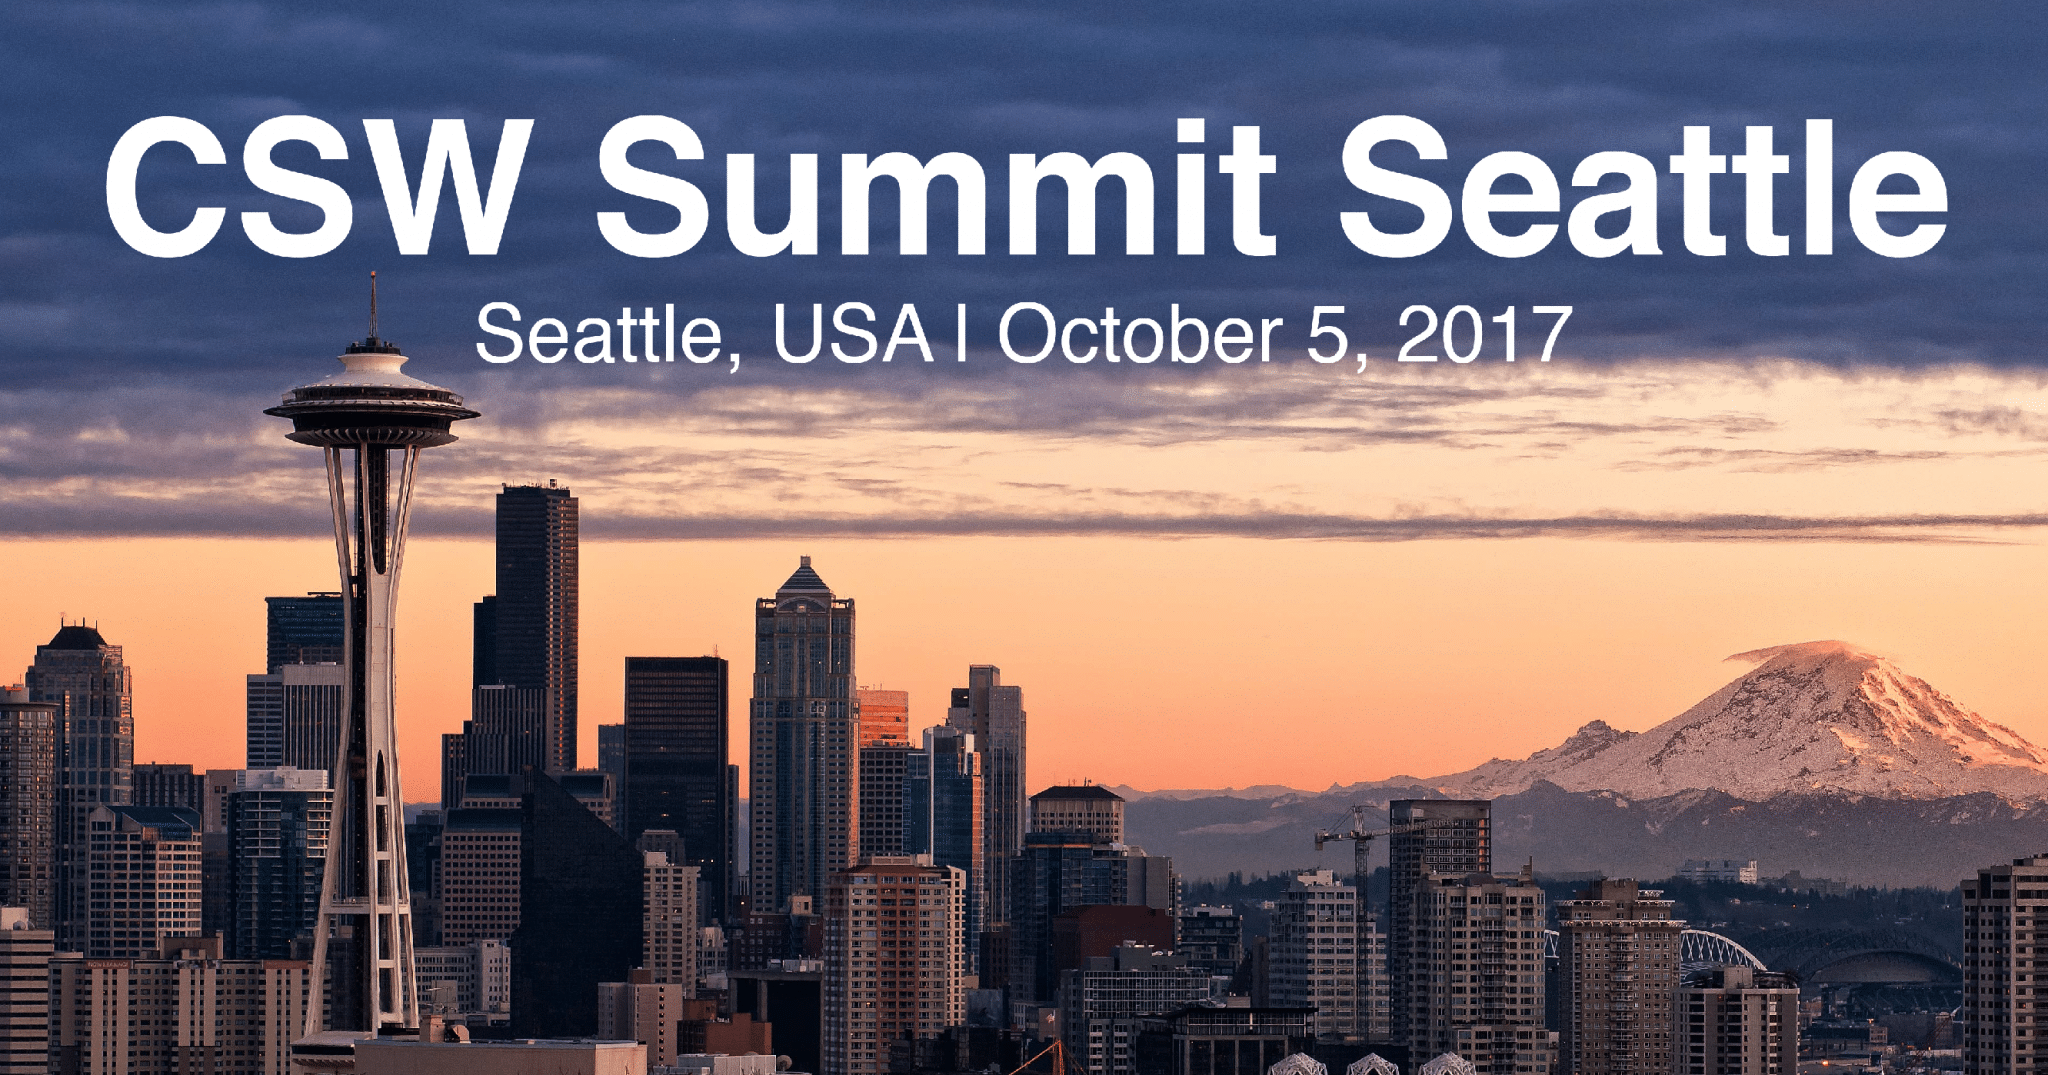 csw-summit-seattle-october-5th-2017